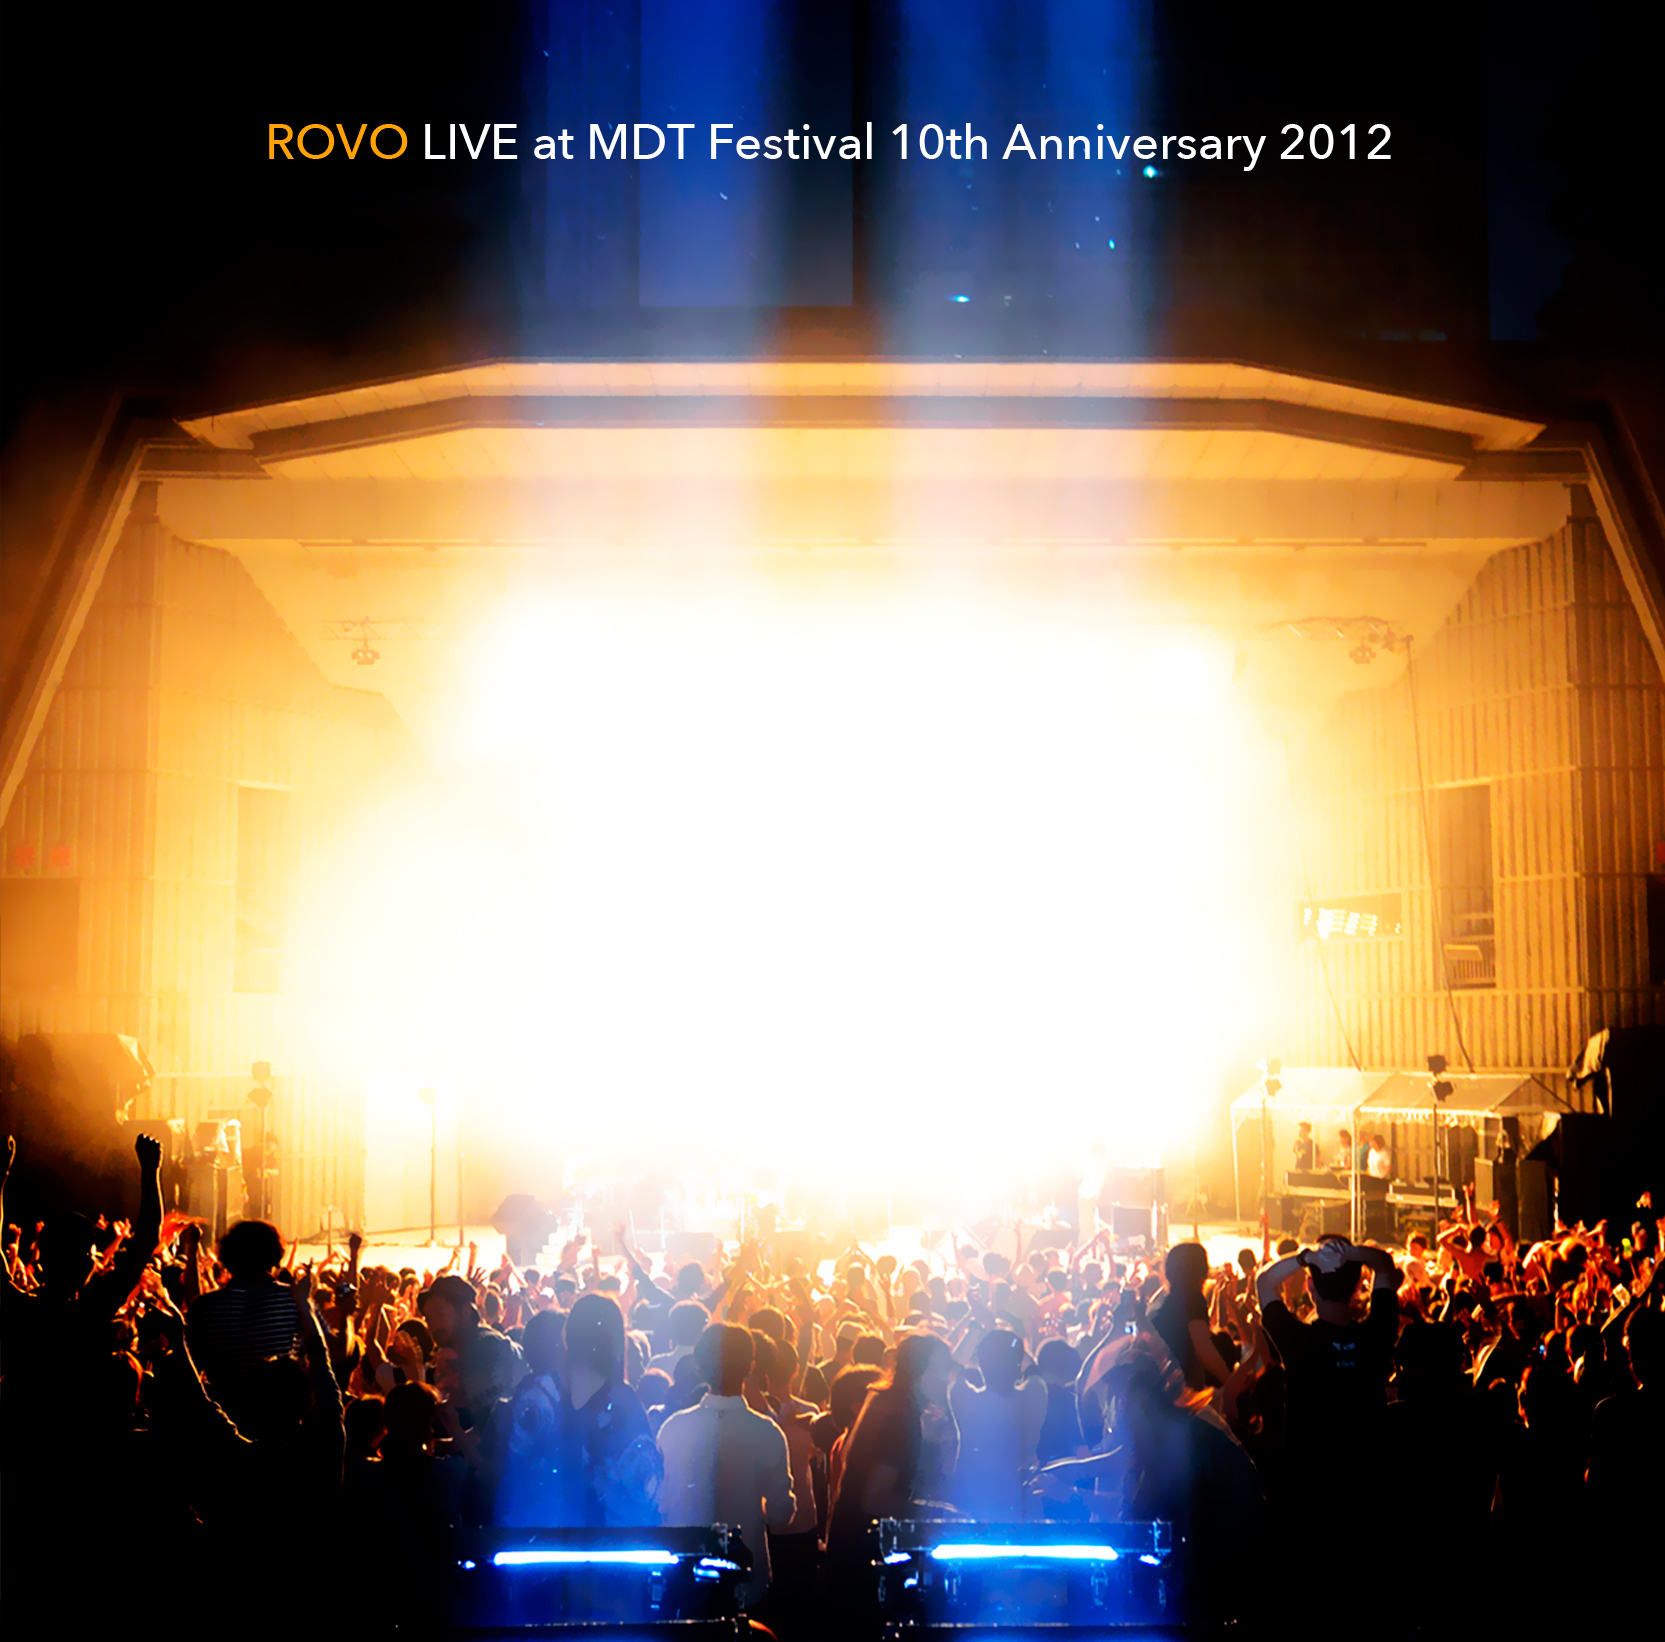 ROVO MDTF 10th CD_JKT.jpg